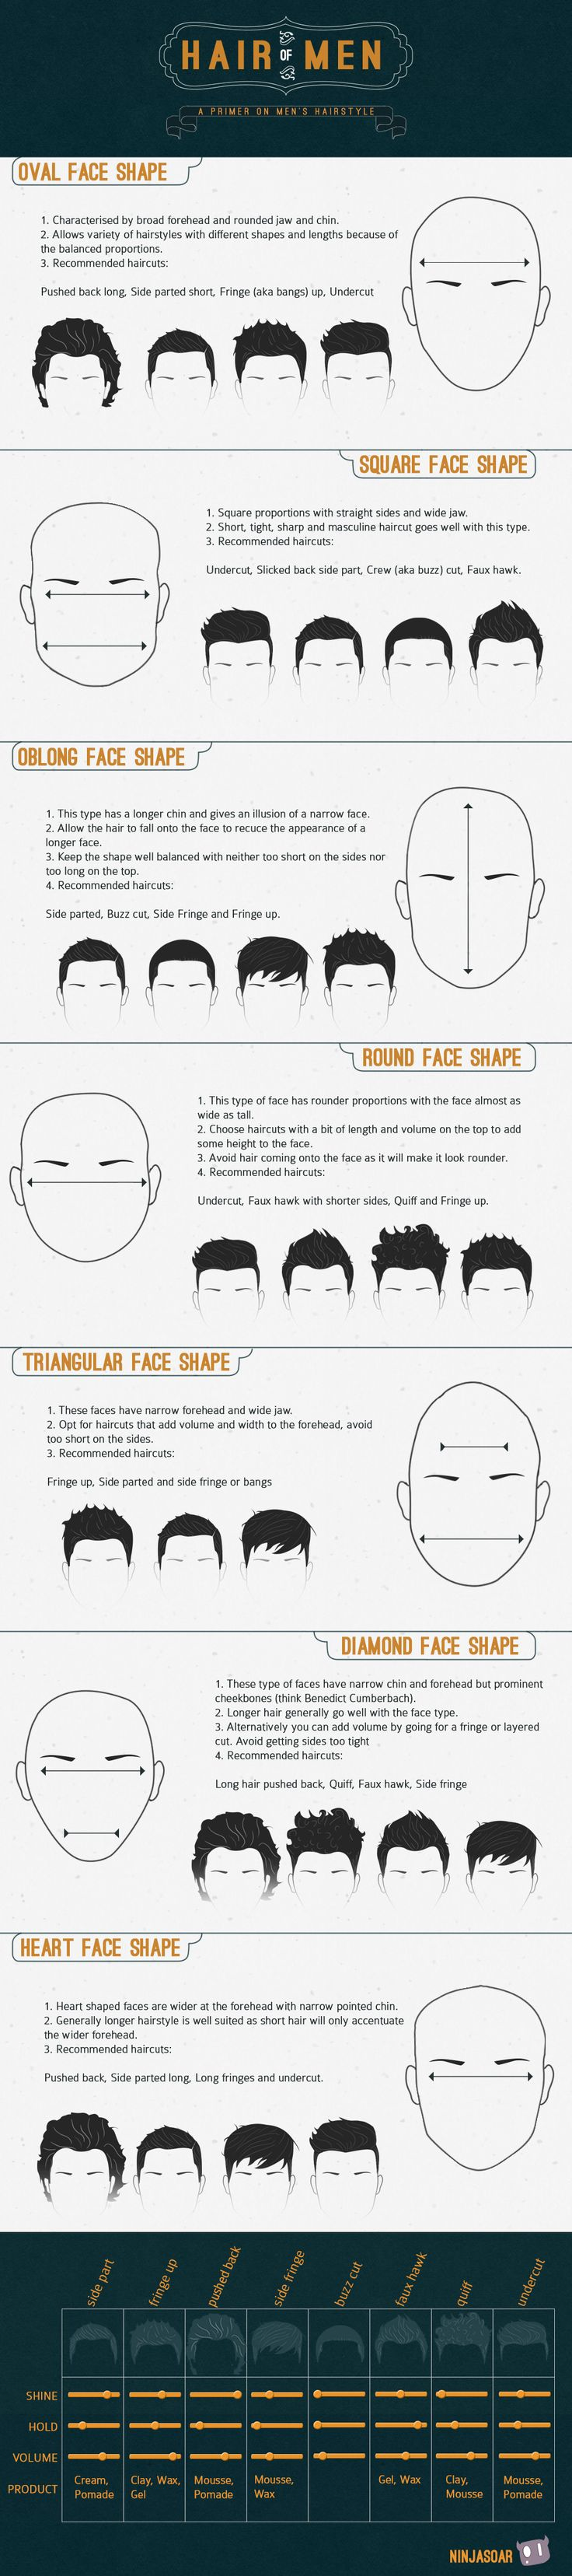 Tips to Choose the Right Men's Haircut for Your Face Shape - Tipsographic